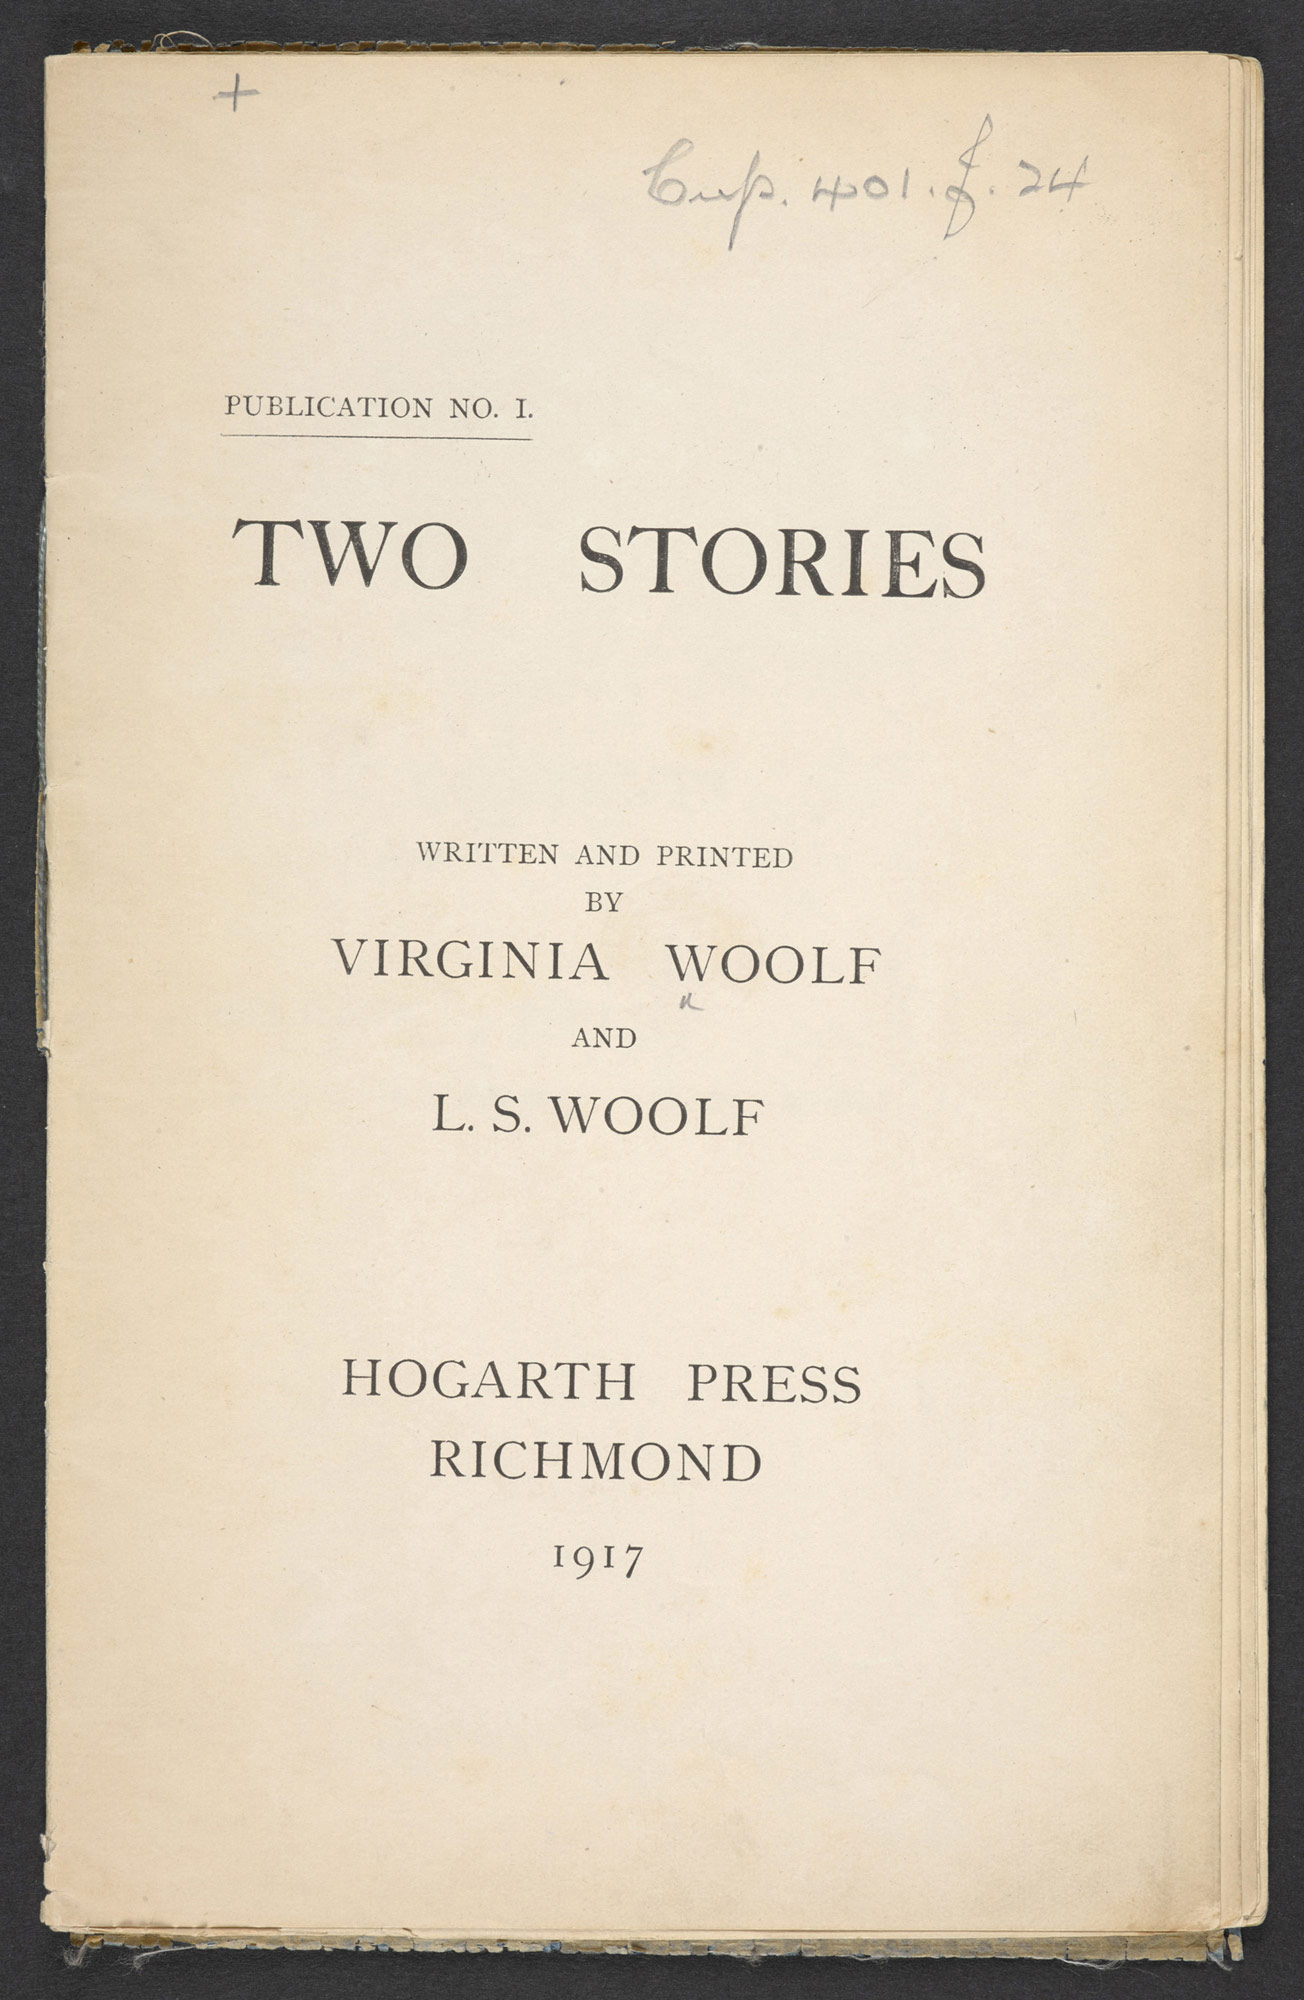 Two Stories, written and printed by Virginia and Leonard Woolf